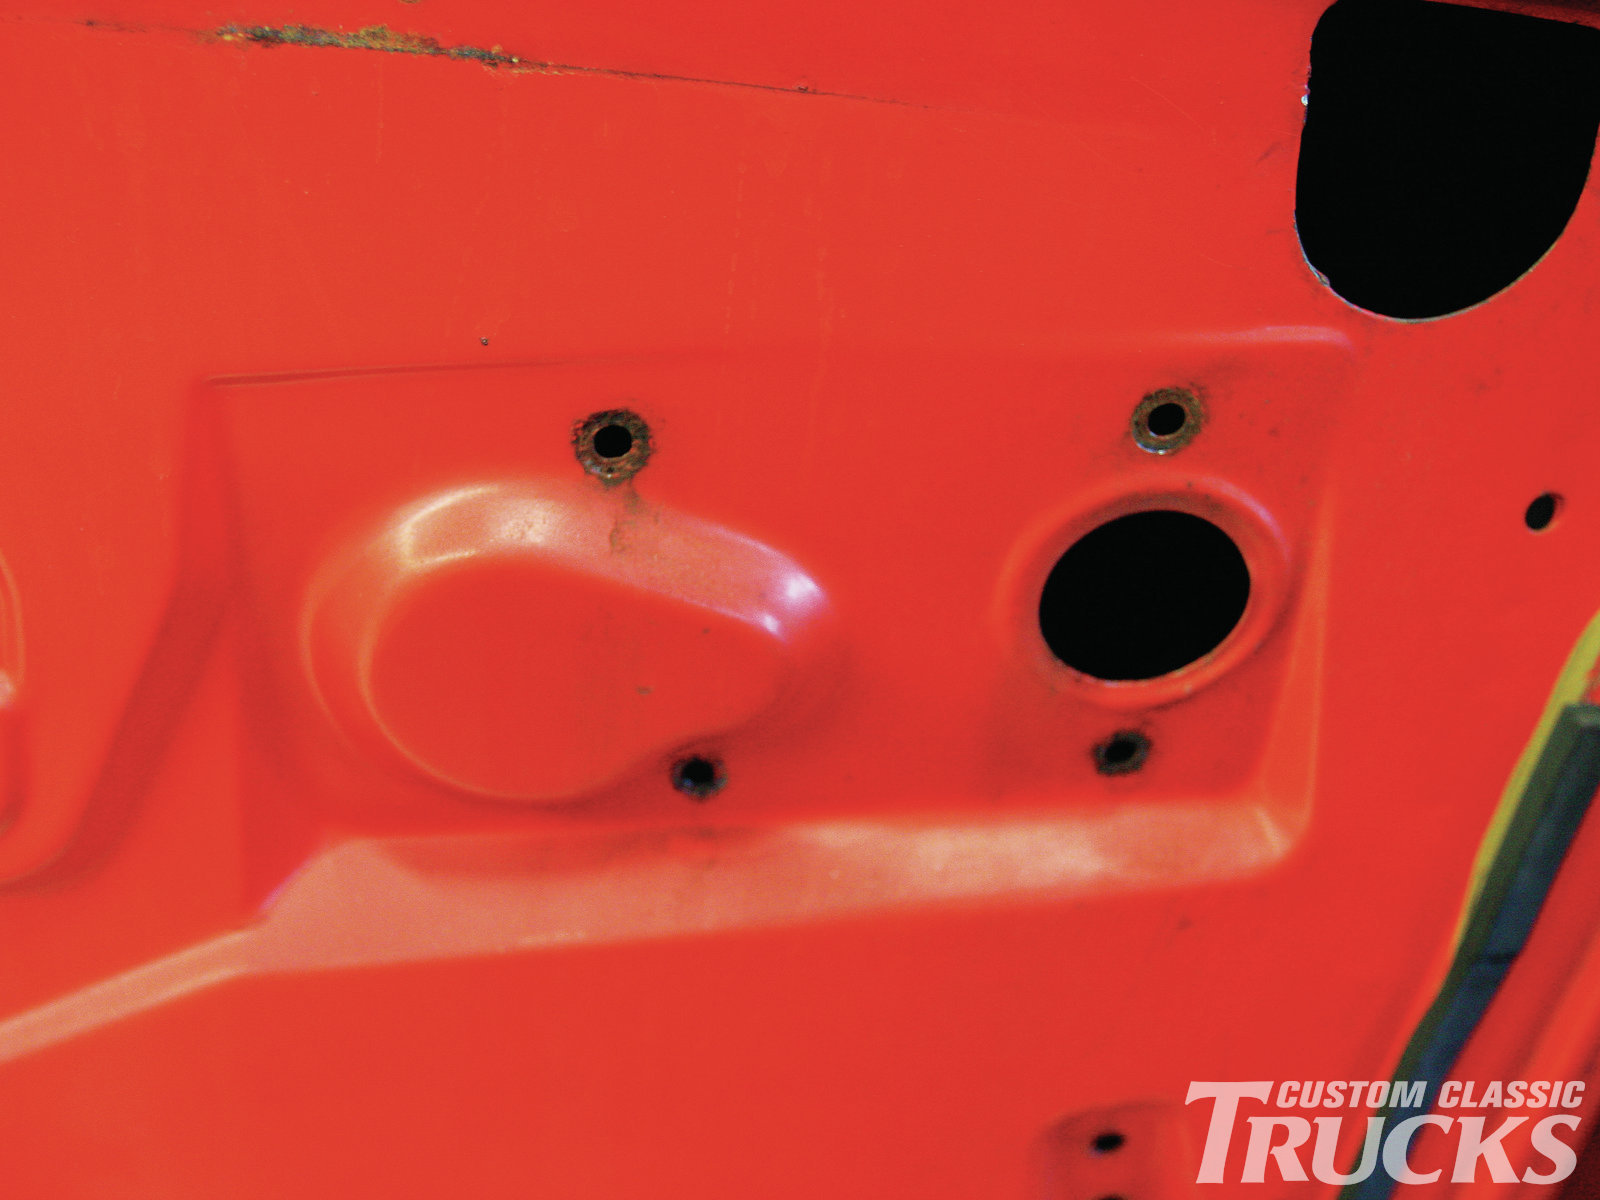 13. The manual regulator can be removed once these four screws have been withdrawn.